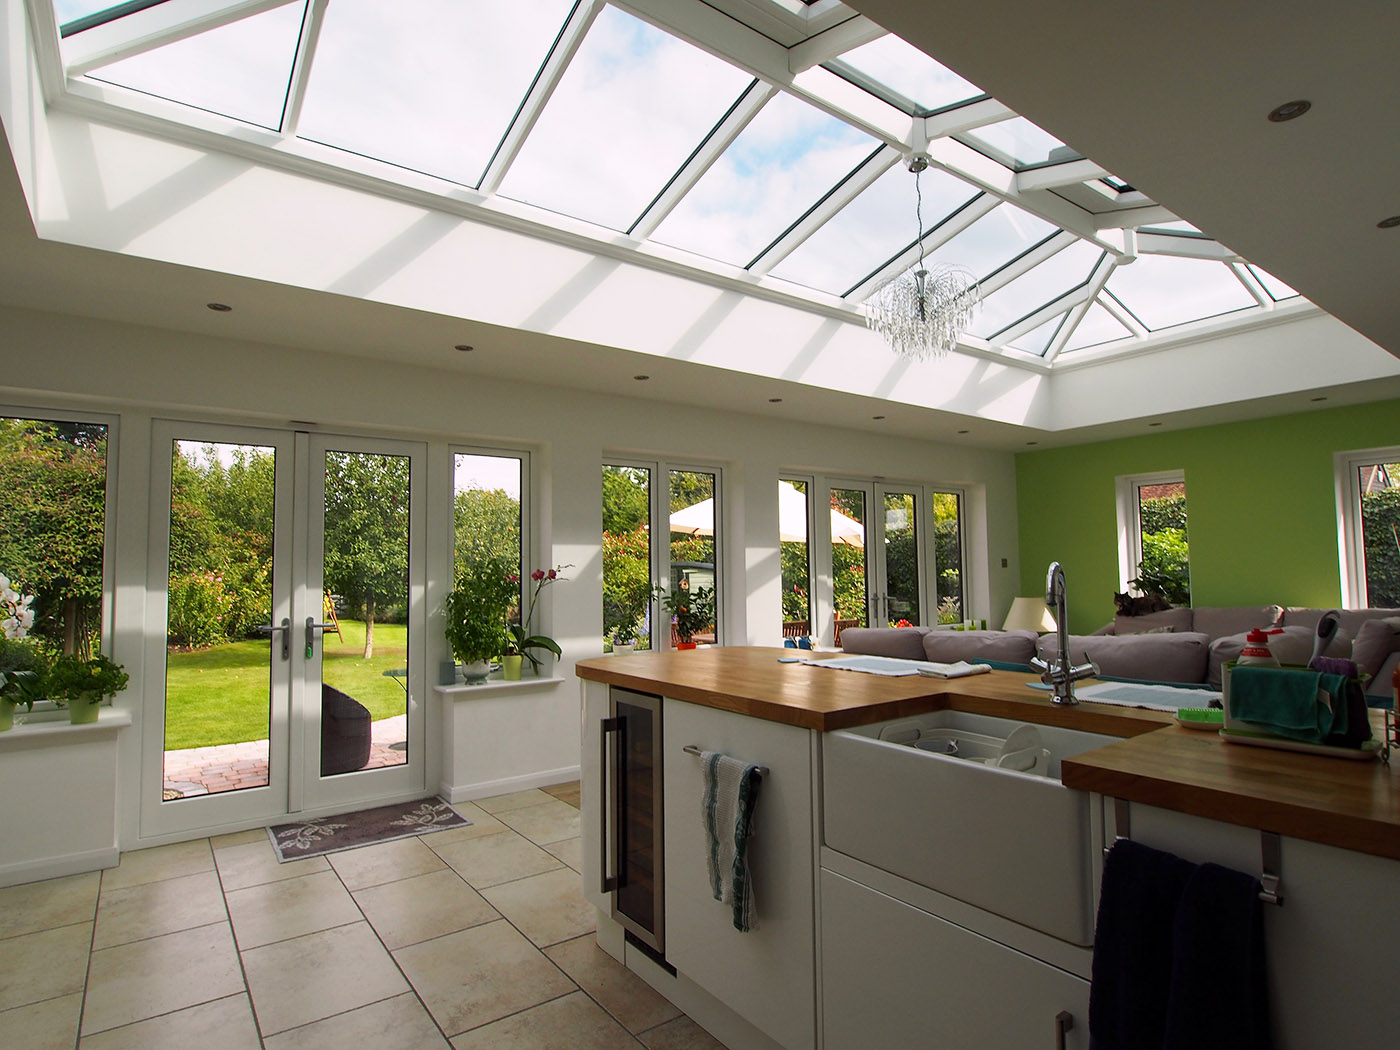 Gallery archive kingsholme for Orangery kitchen